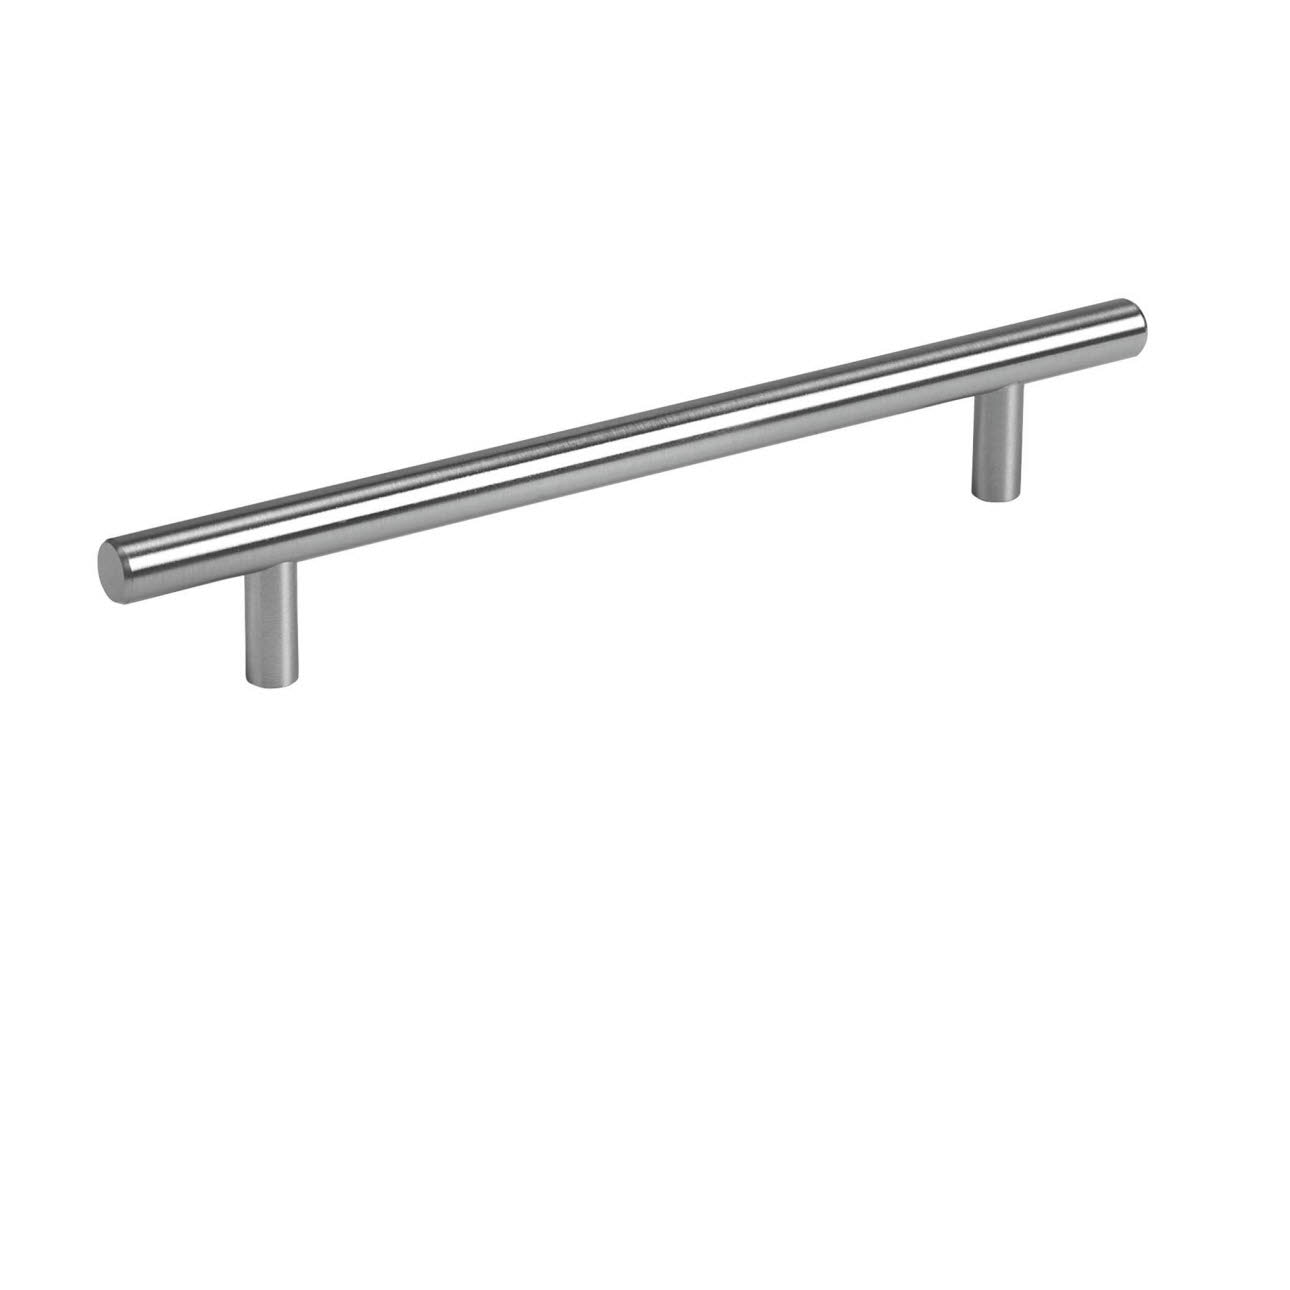 Metal rail bar stainless steel coloured